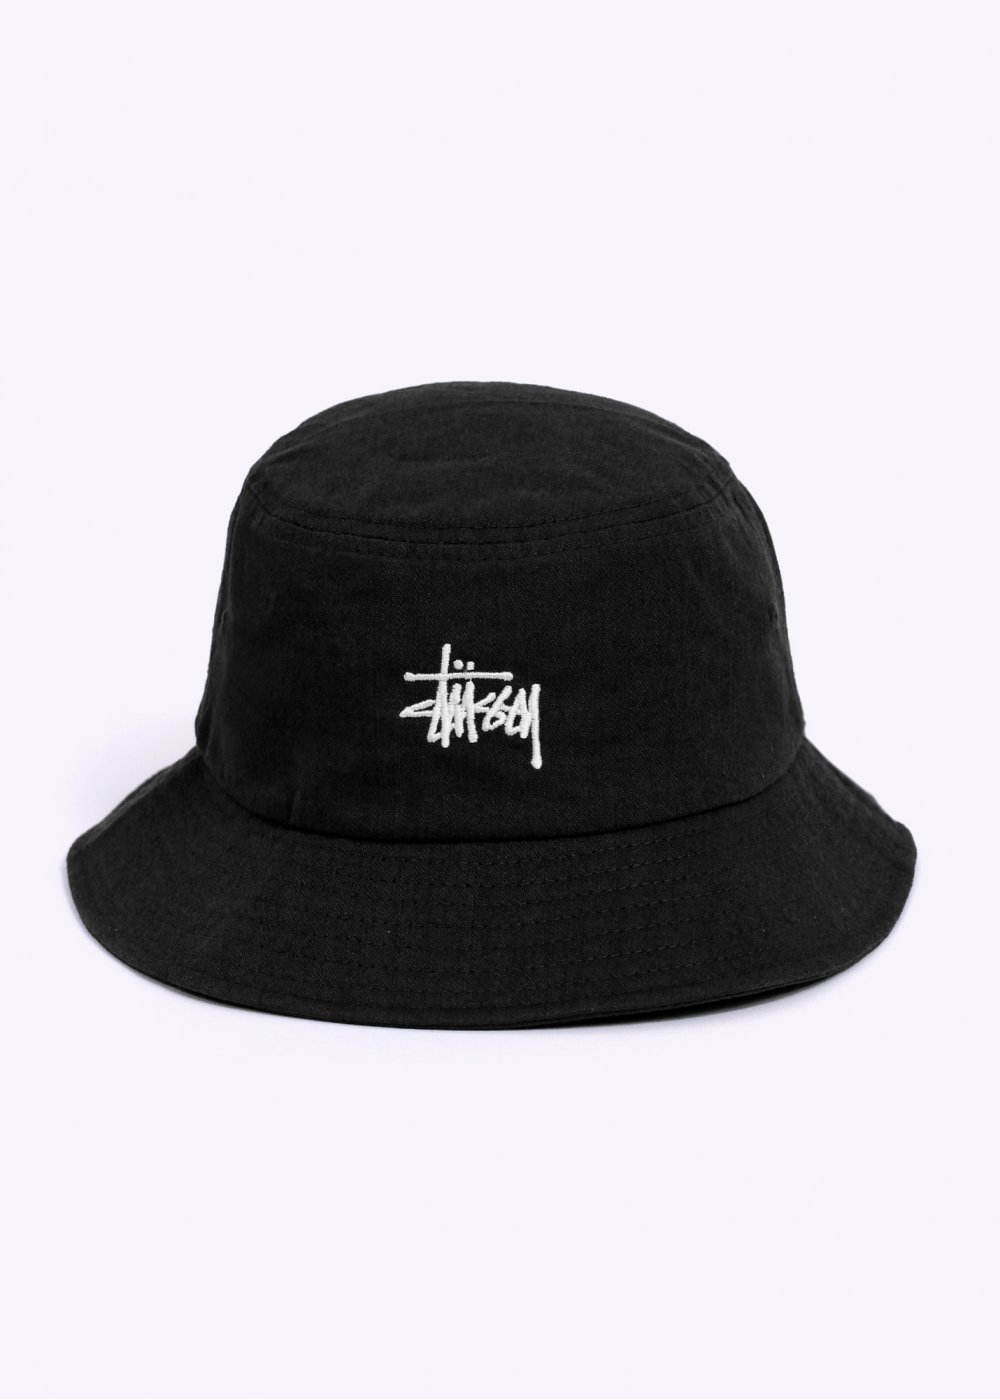 Stussy Herringbone Bucket Hat - Black f8807219164